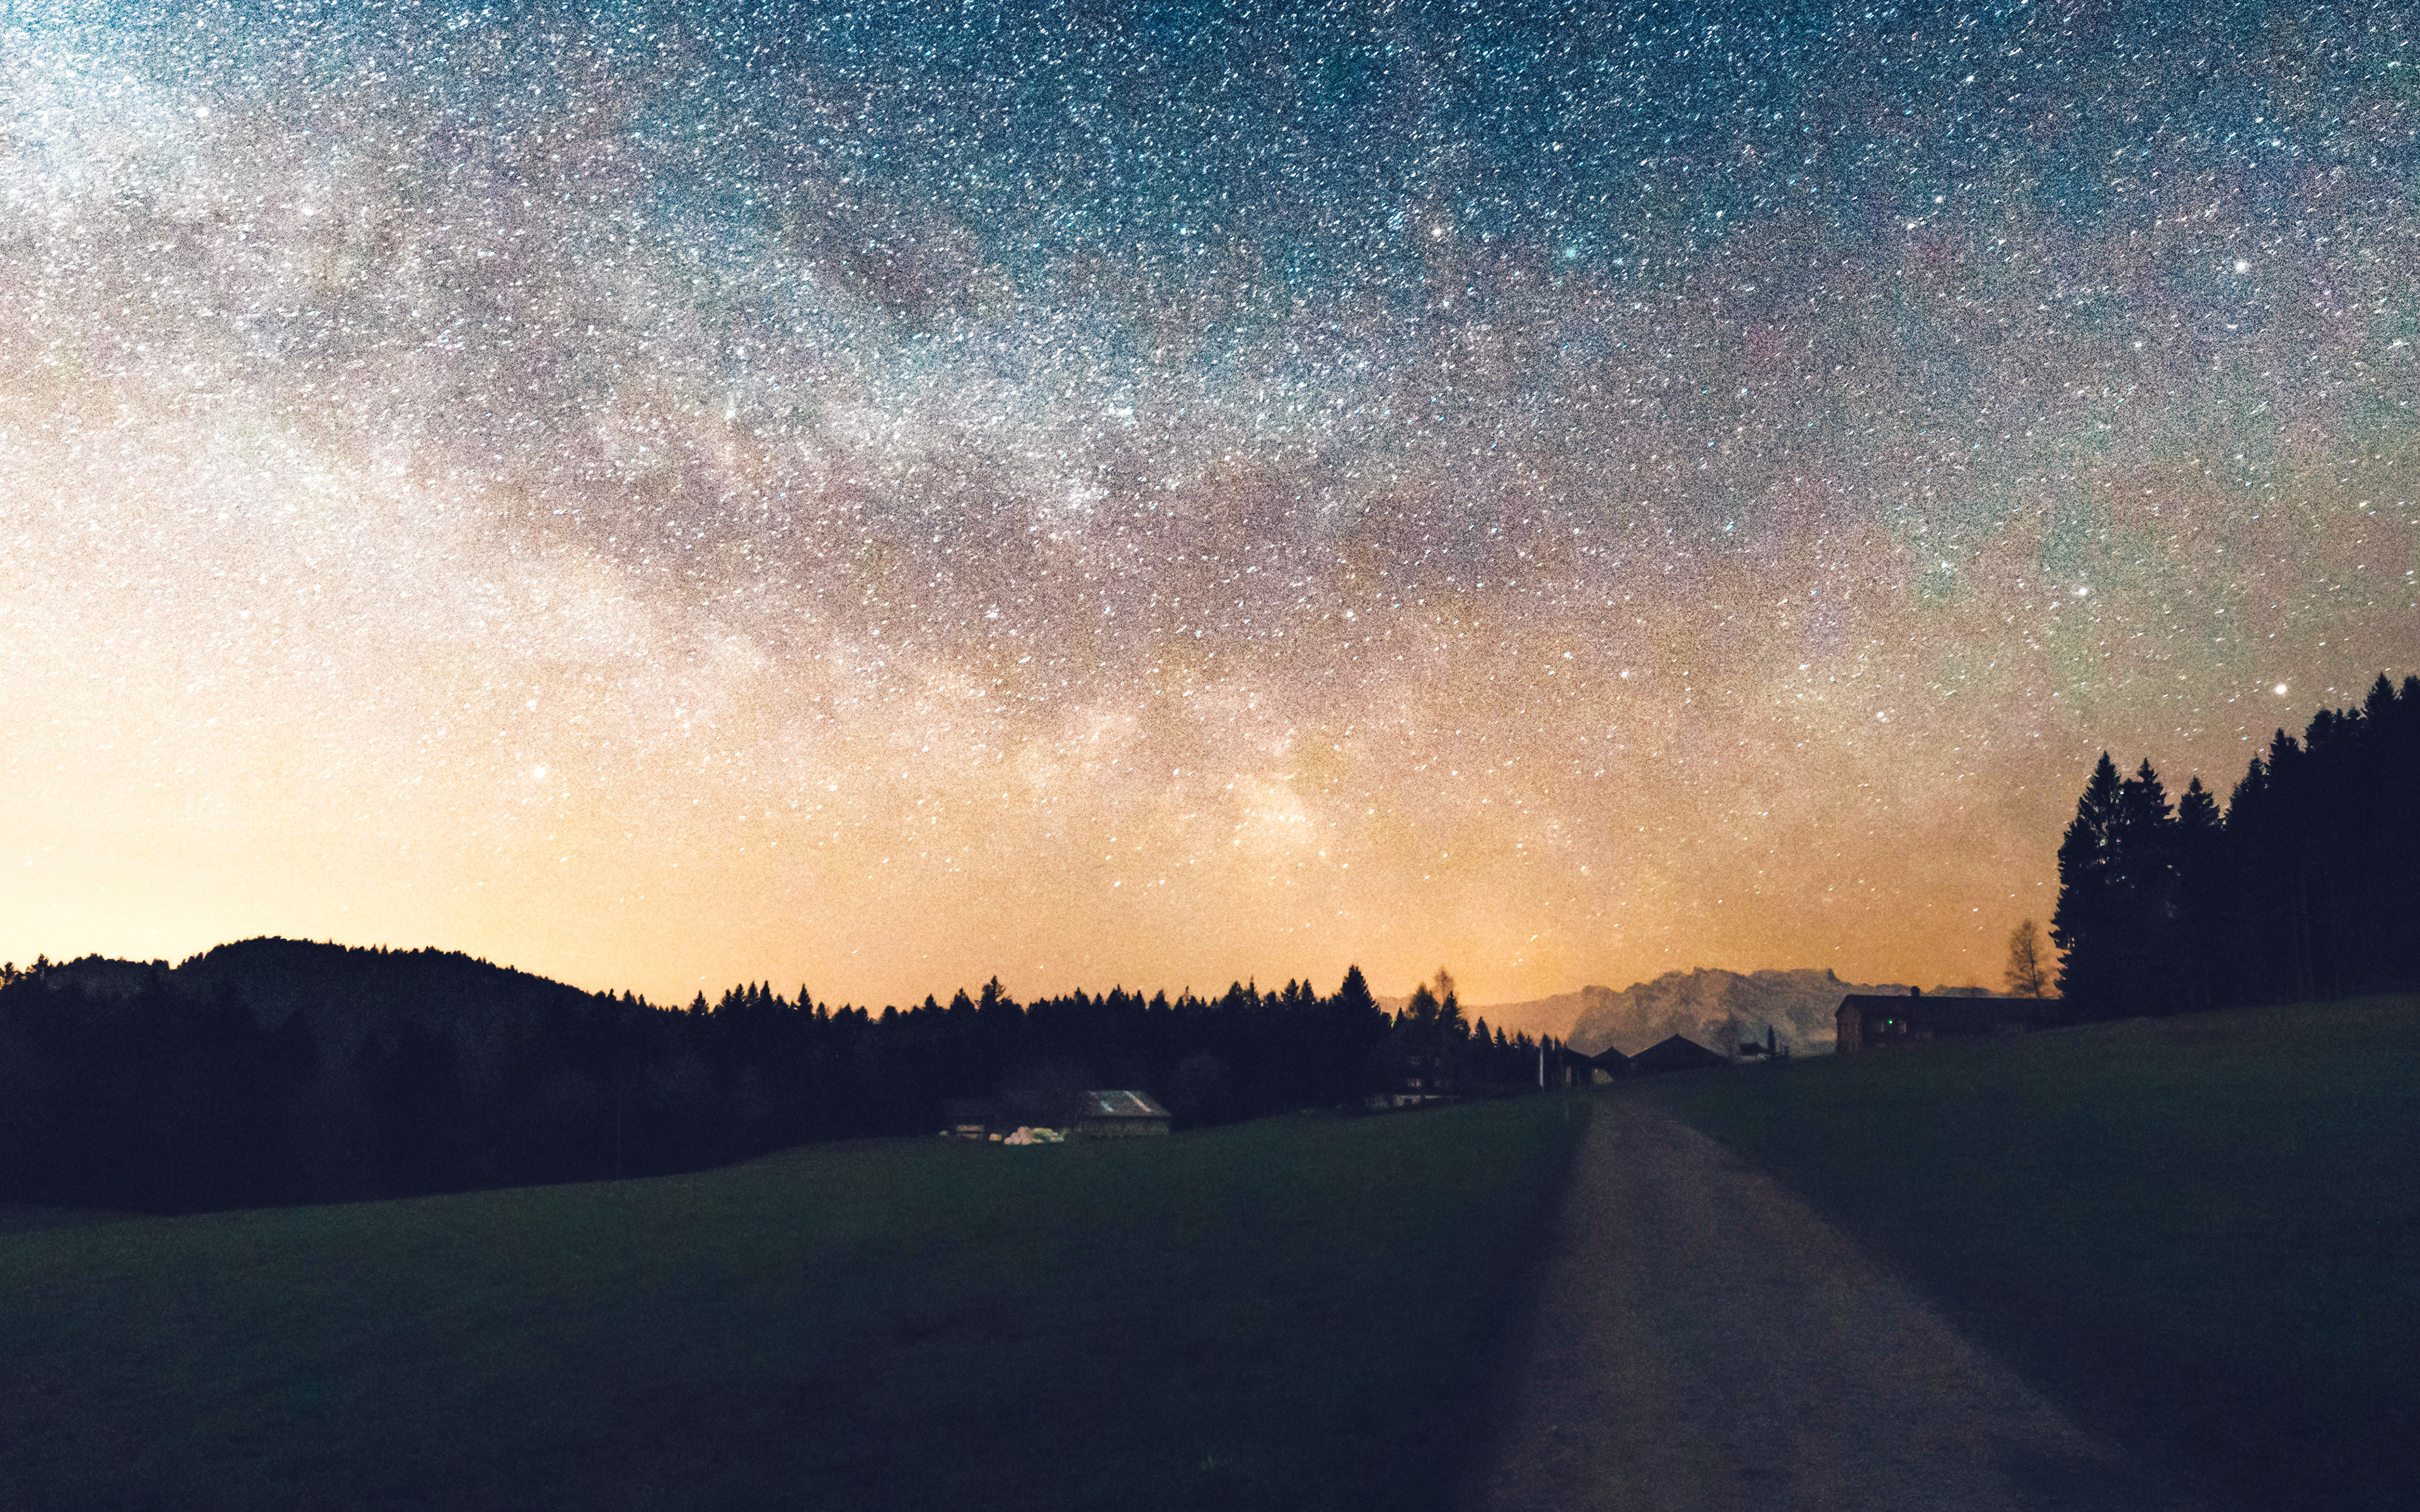 Hd Iphone Wallpapers Fall Nn93 Starry Sky Nature Sunset Mountain Road Wallpaper